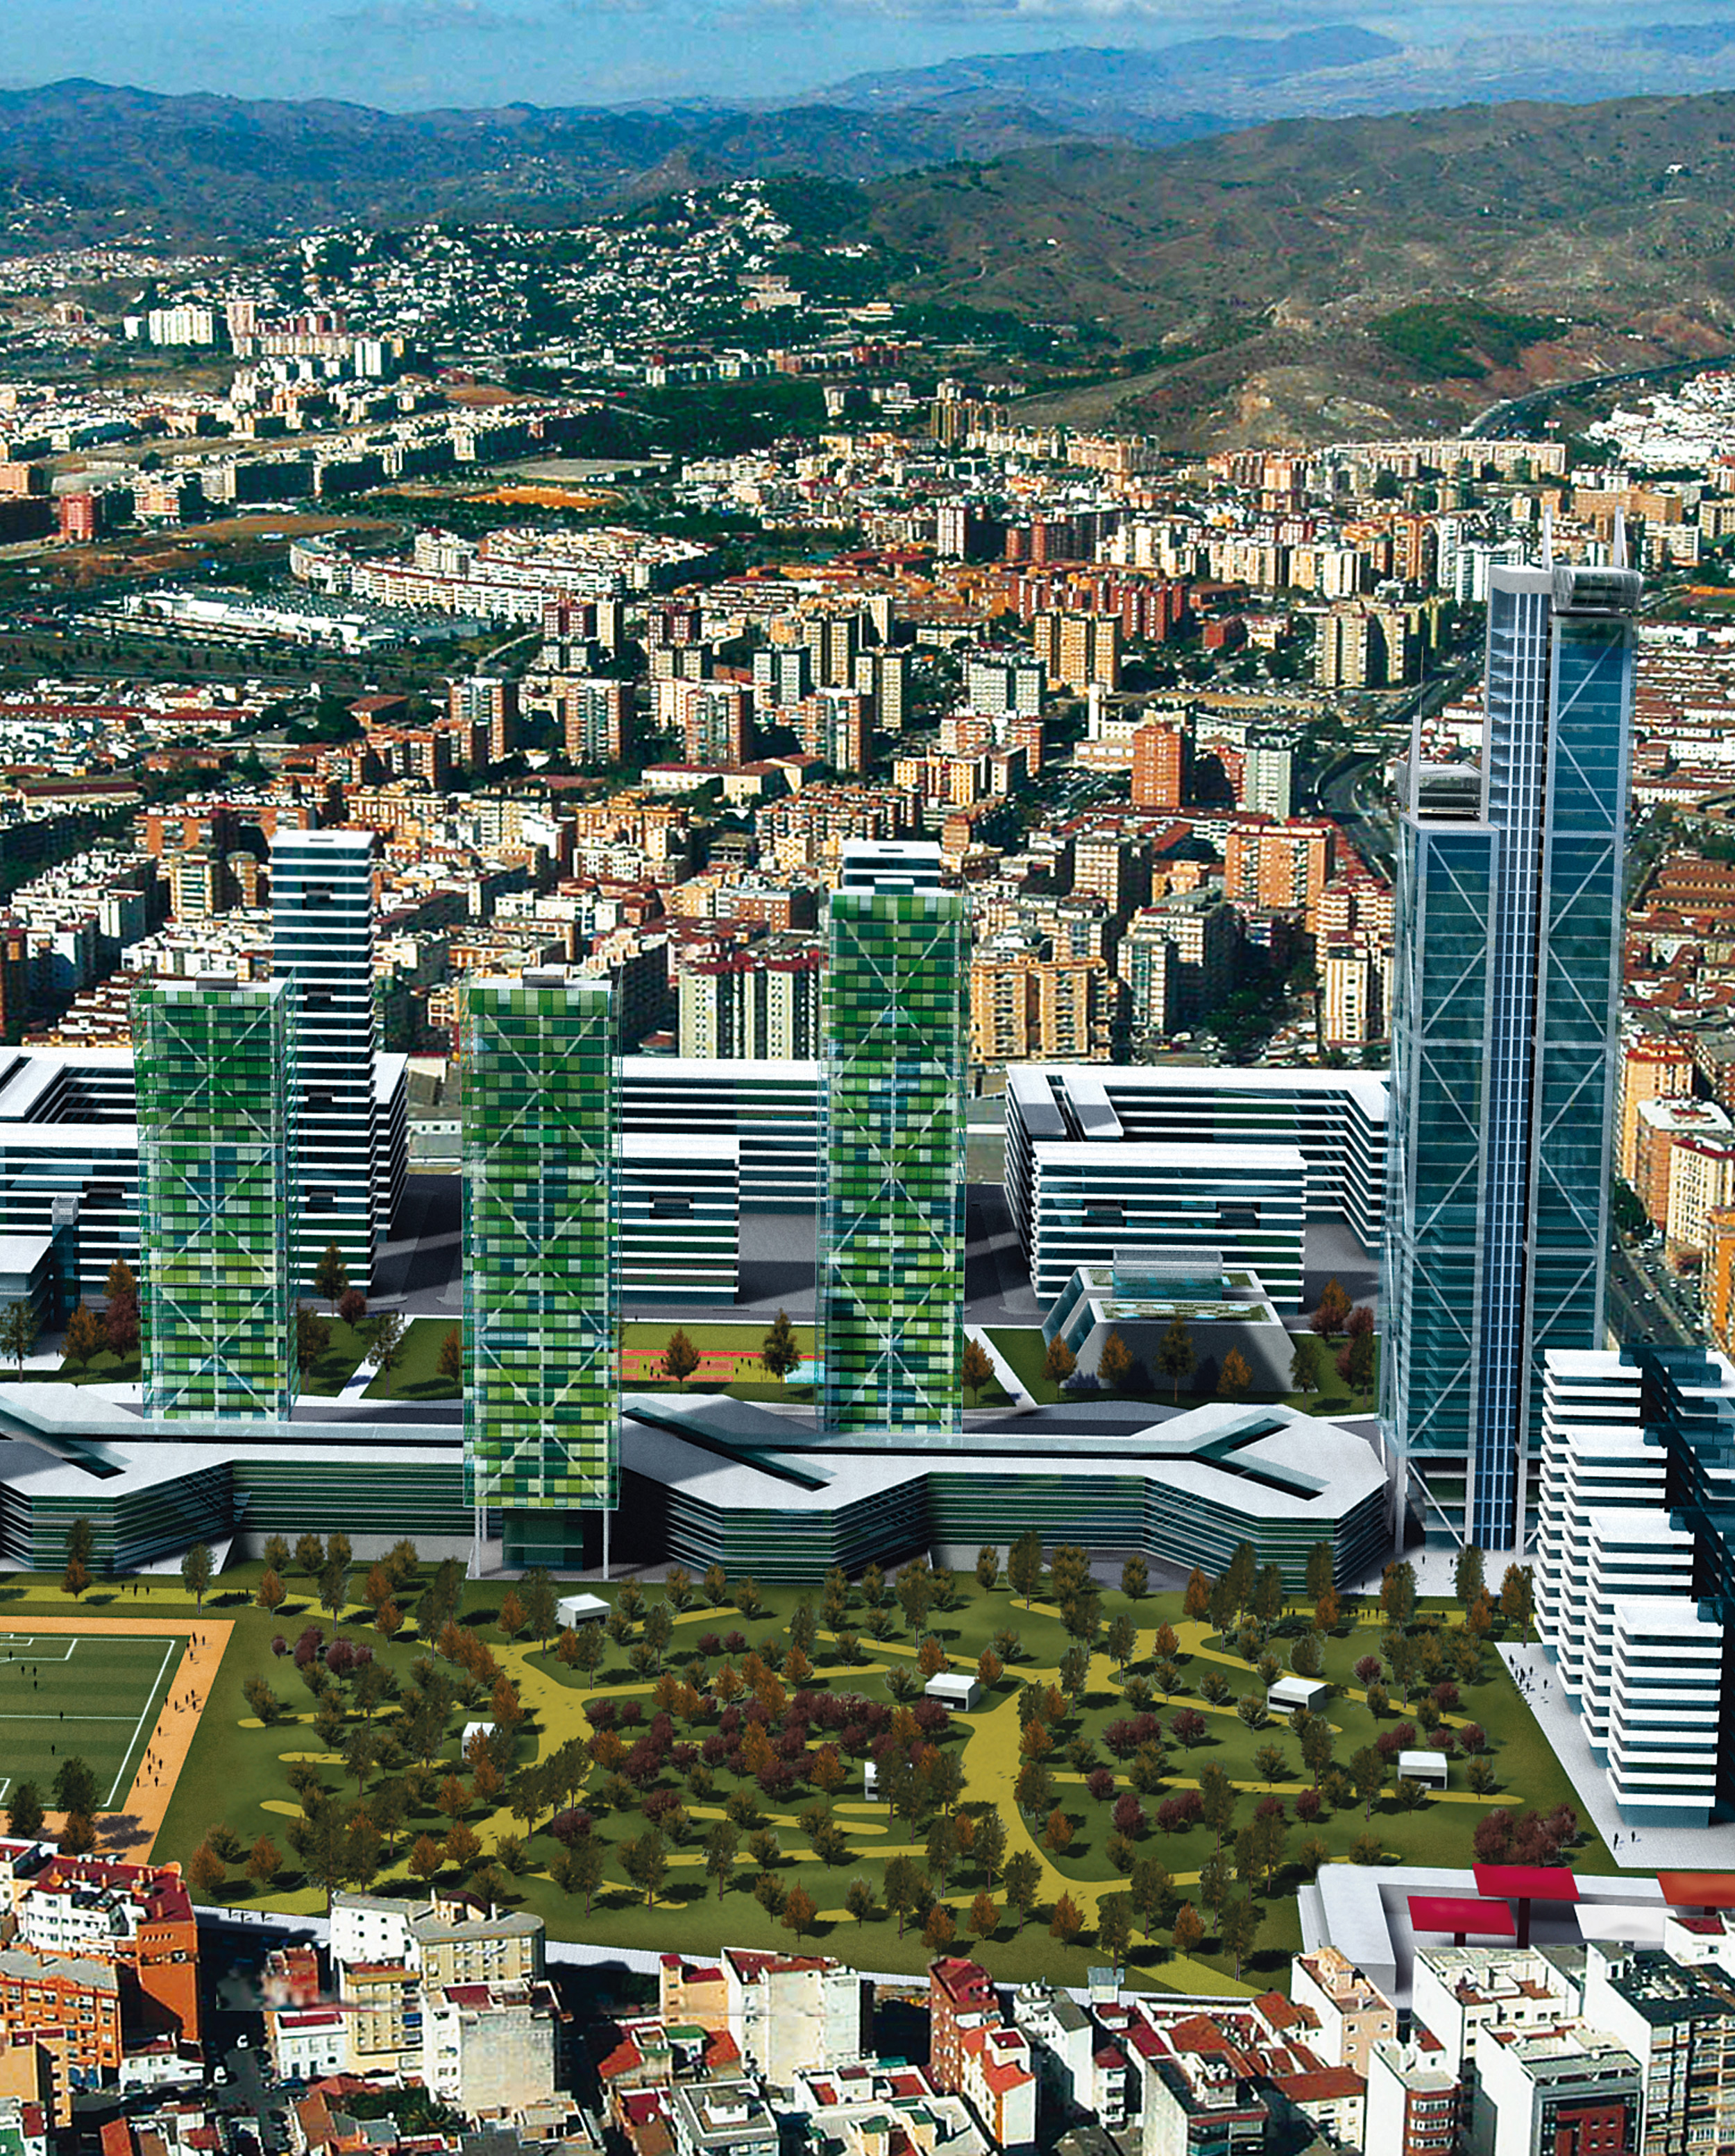 Management of the Old Lands of Repsol, Málaga